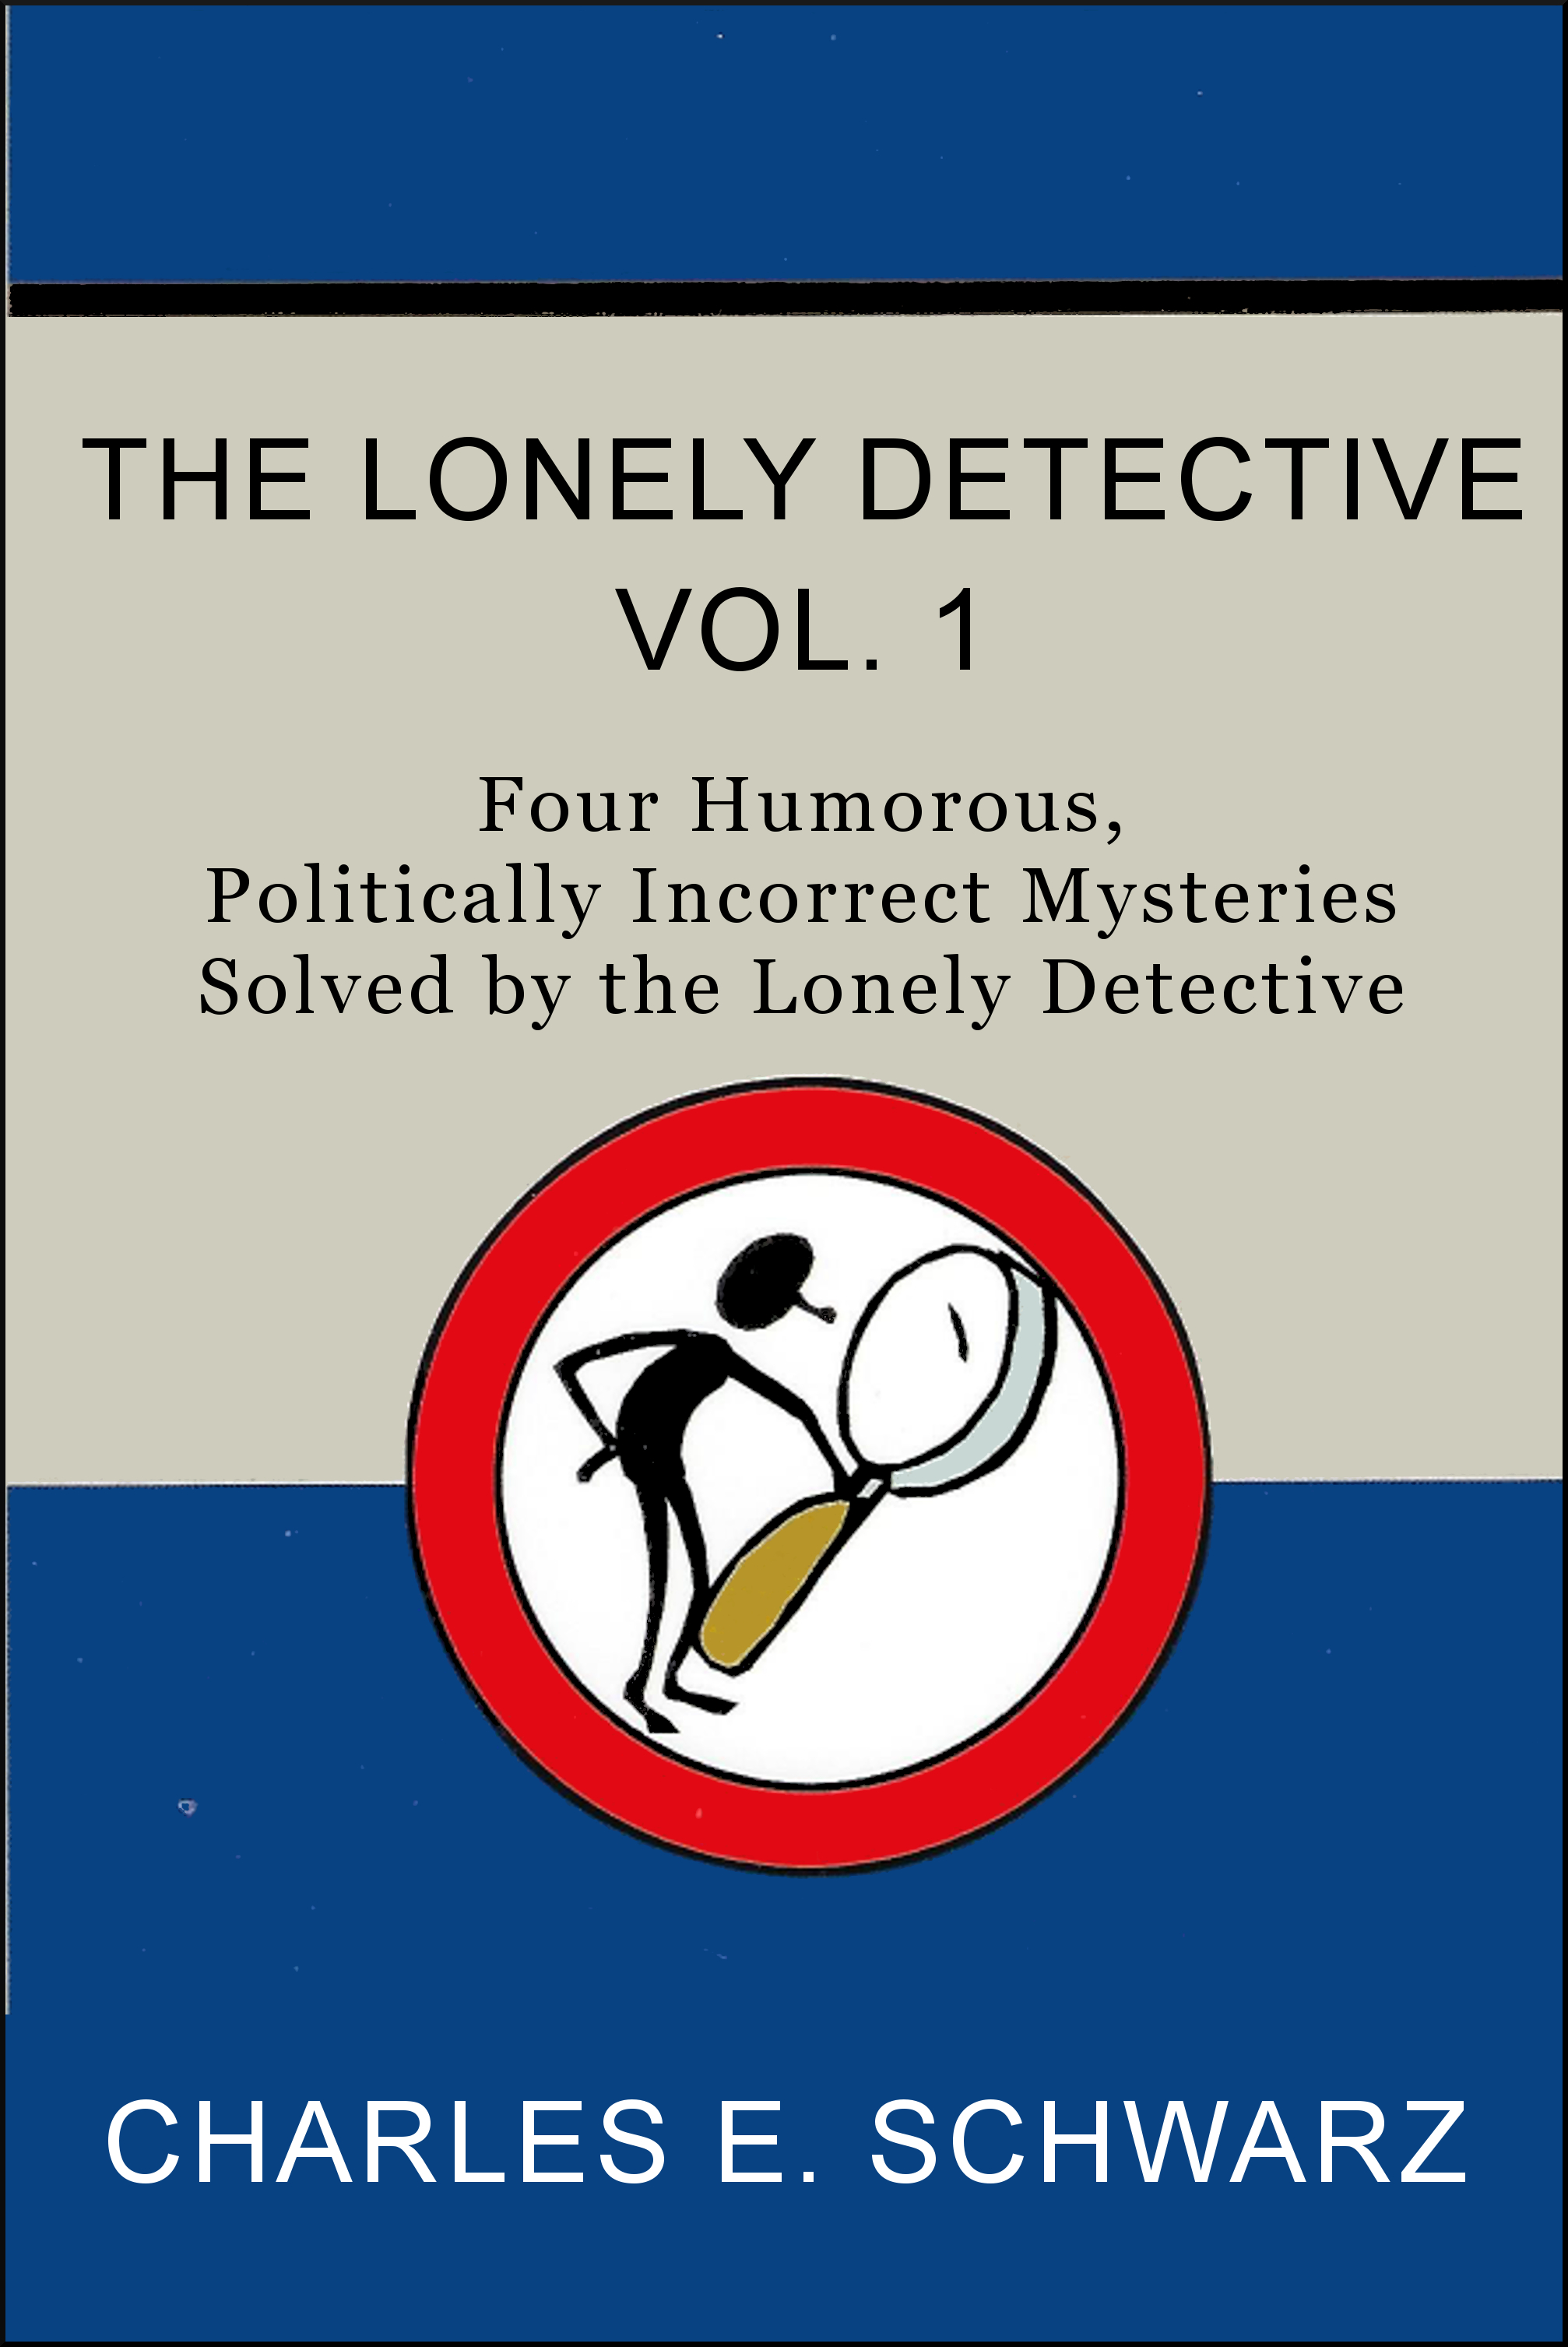 The Lonely Detective, Vol  I - Four Humorous, Politically Incorrect  Mysteries Solved by the Lonely Detective, an Ebook by Charles Schwarz